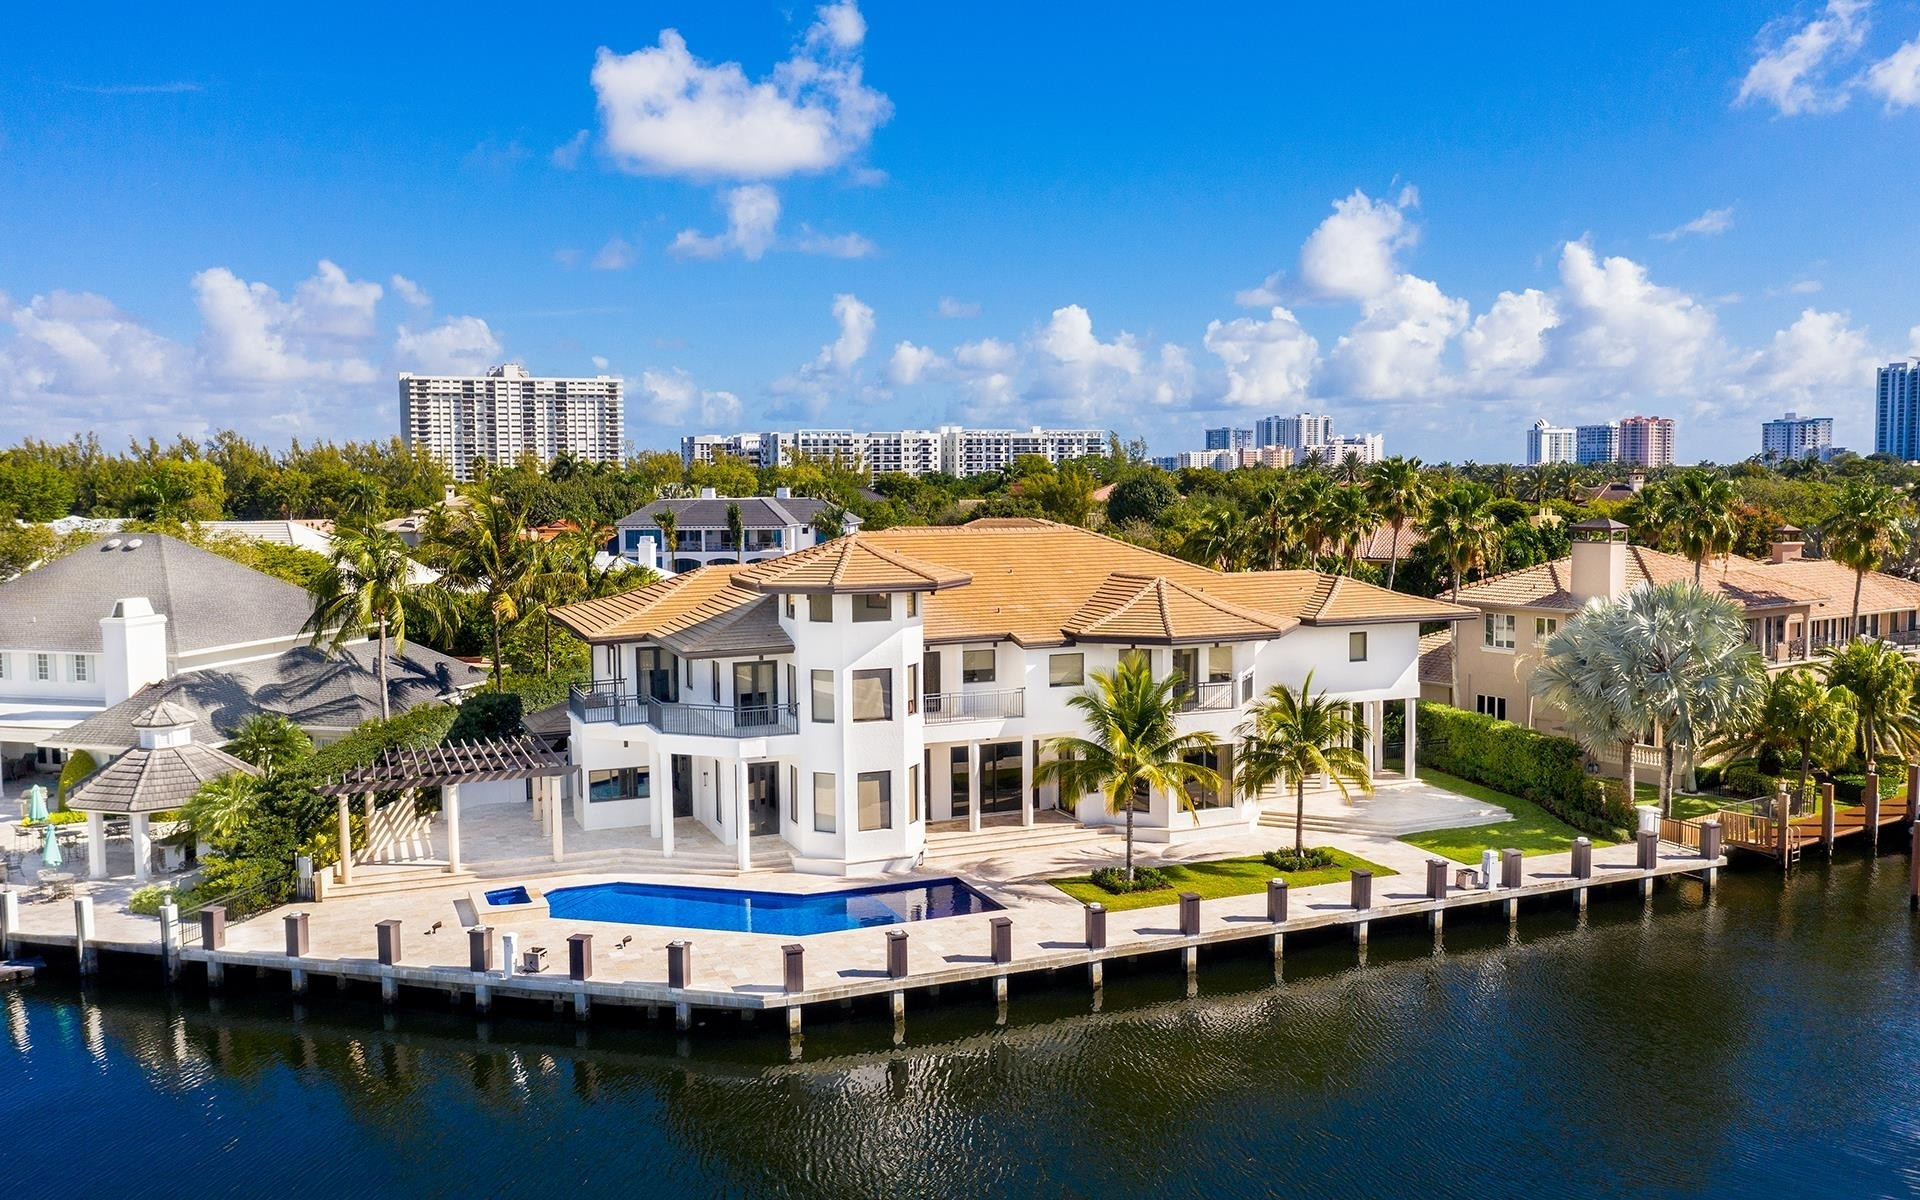 Property at Bay Colony, Fort Lauderdale, FL 33308